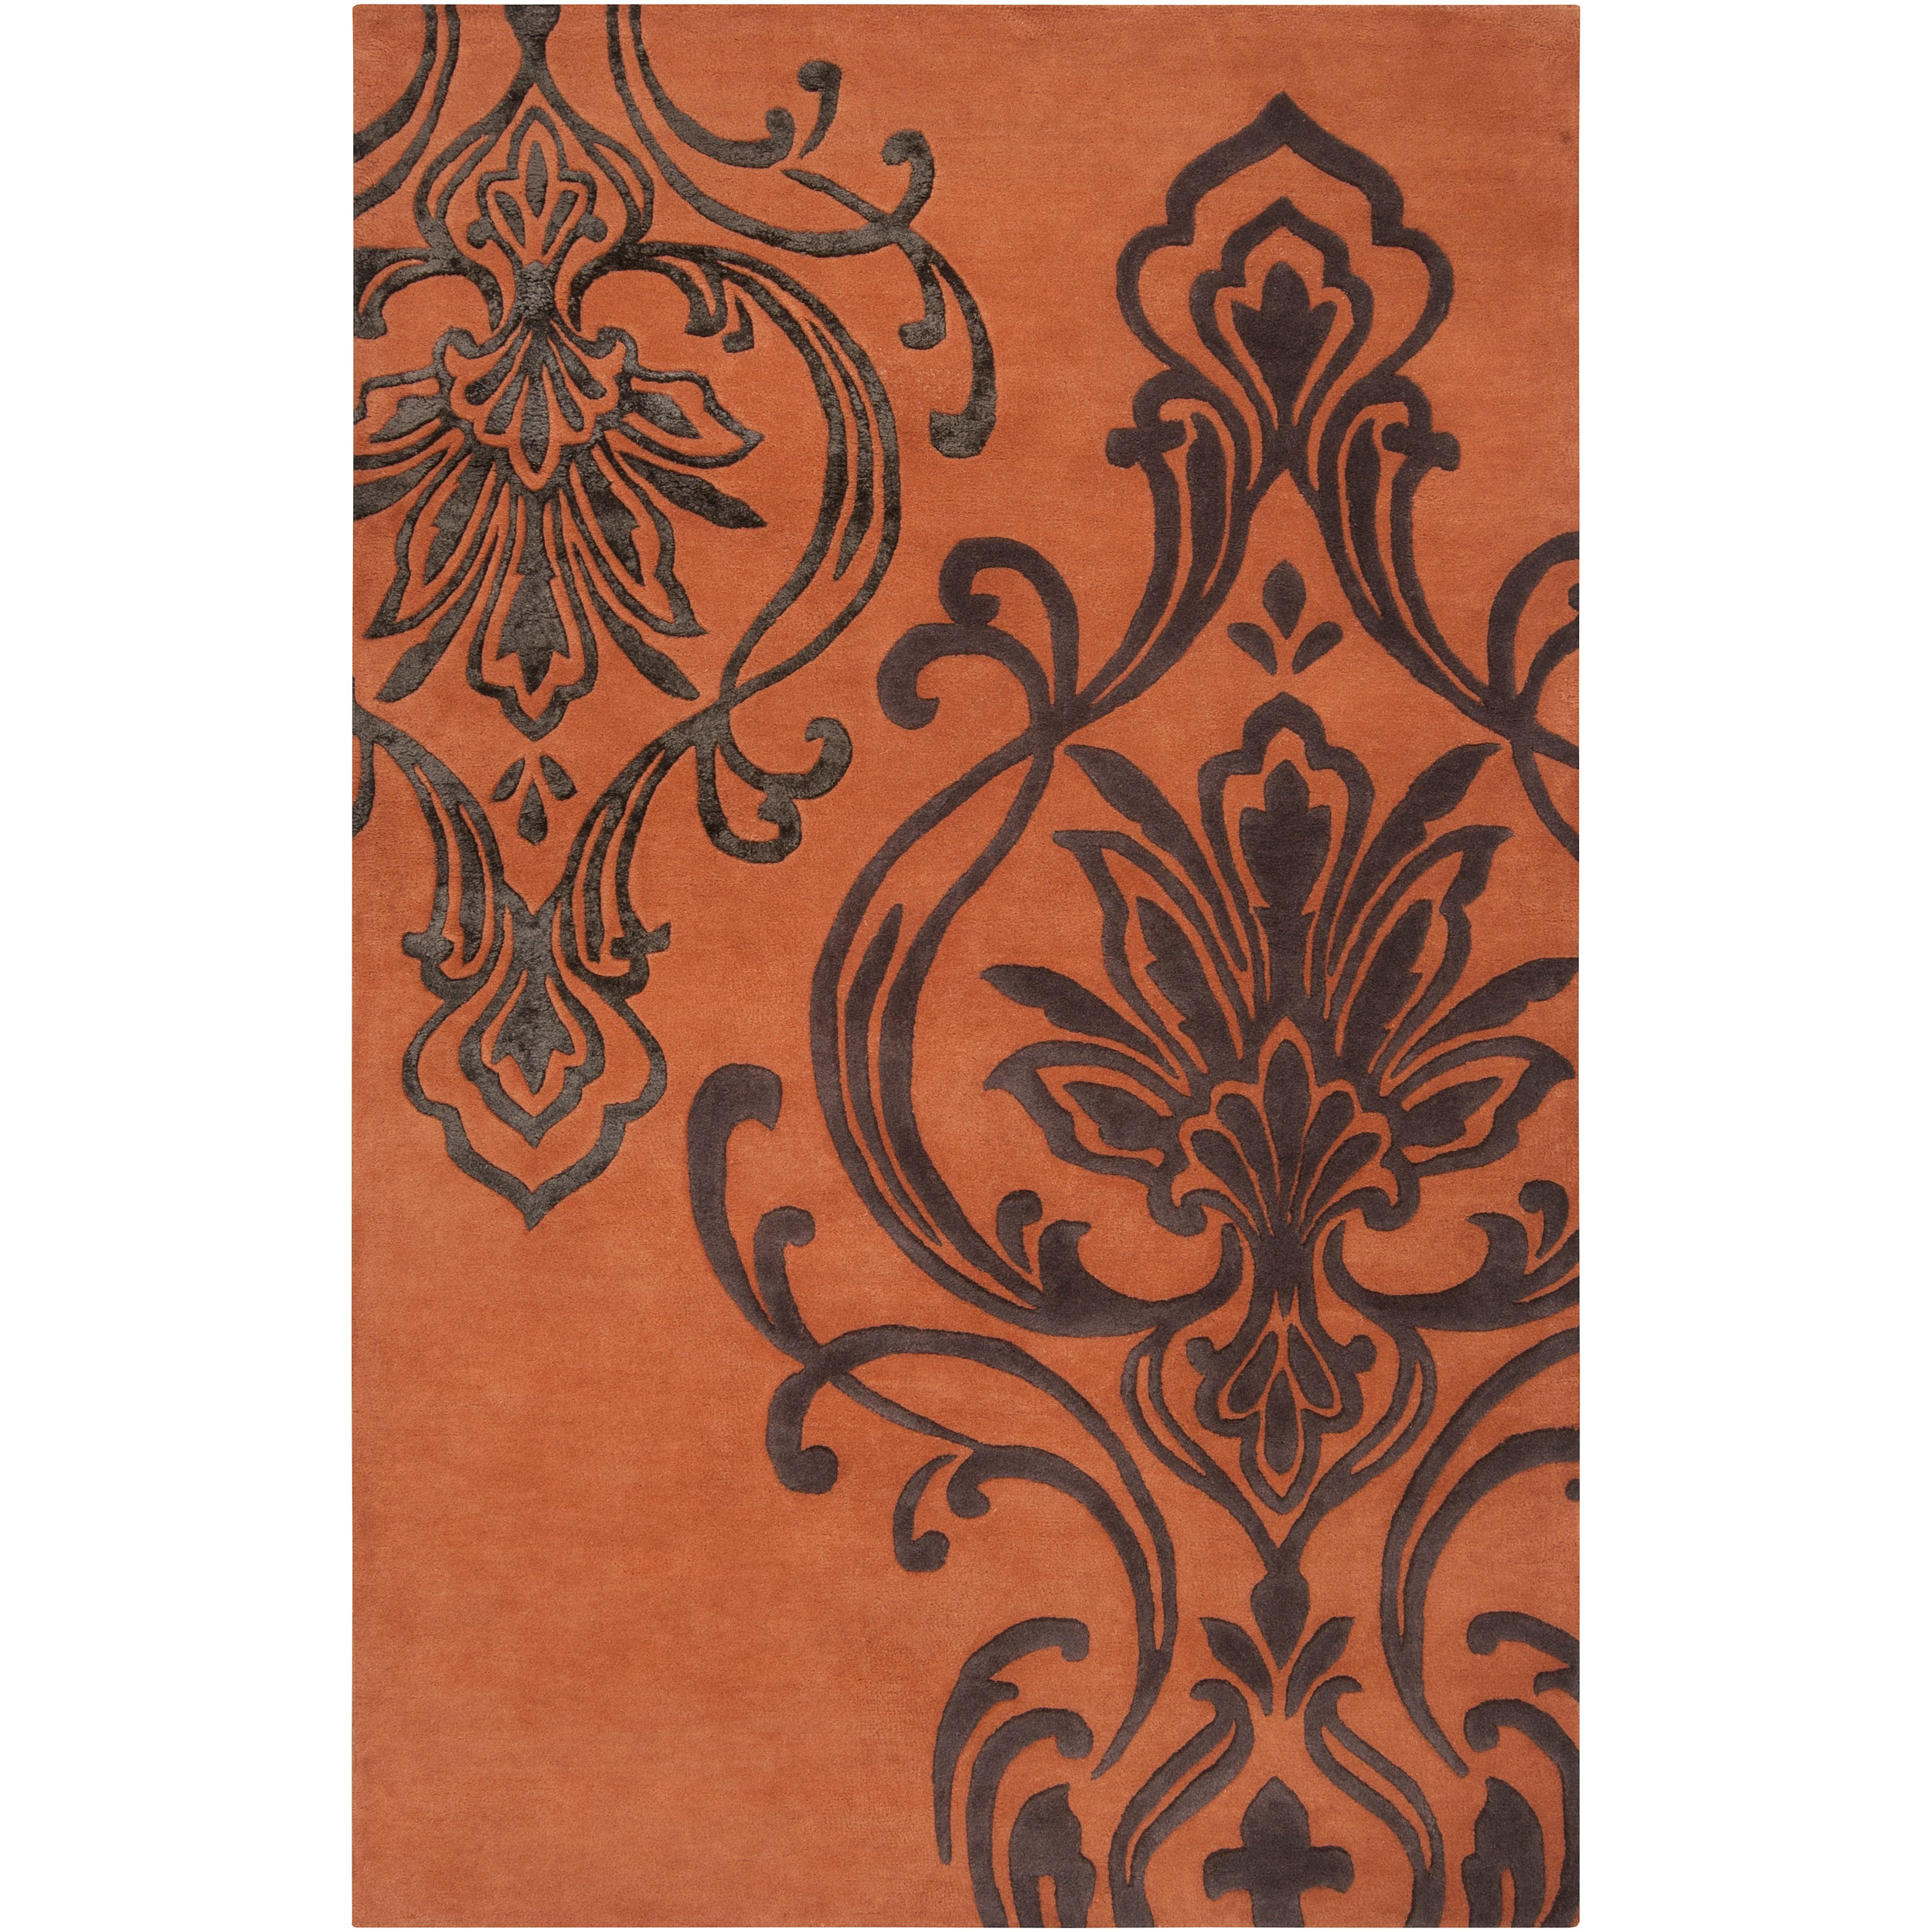 Candice Olson Hand-tufted Orange Orpheus Damask Design Wool Rug (3'3 x 5'3)